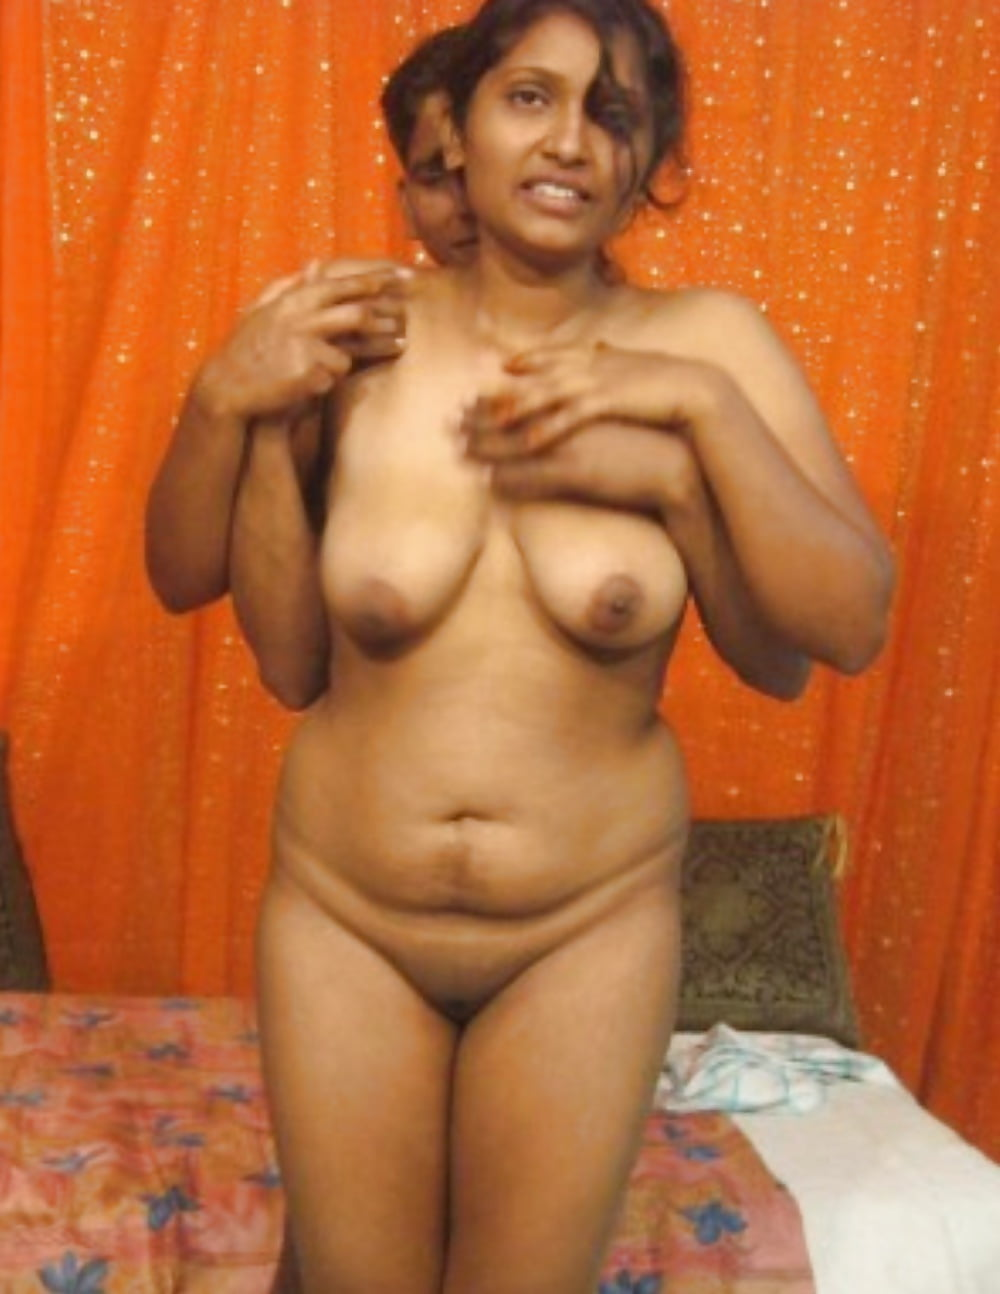 Pakistan moms naked, saxy fuck picture